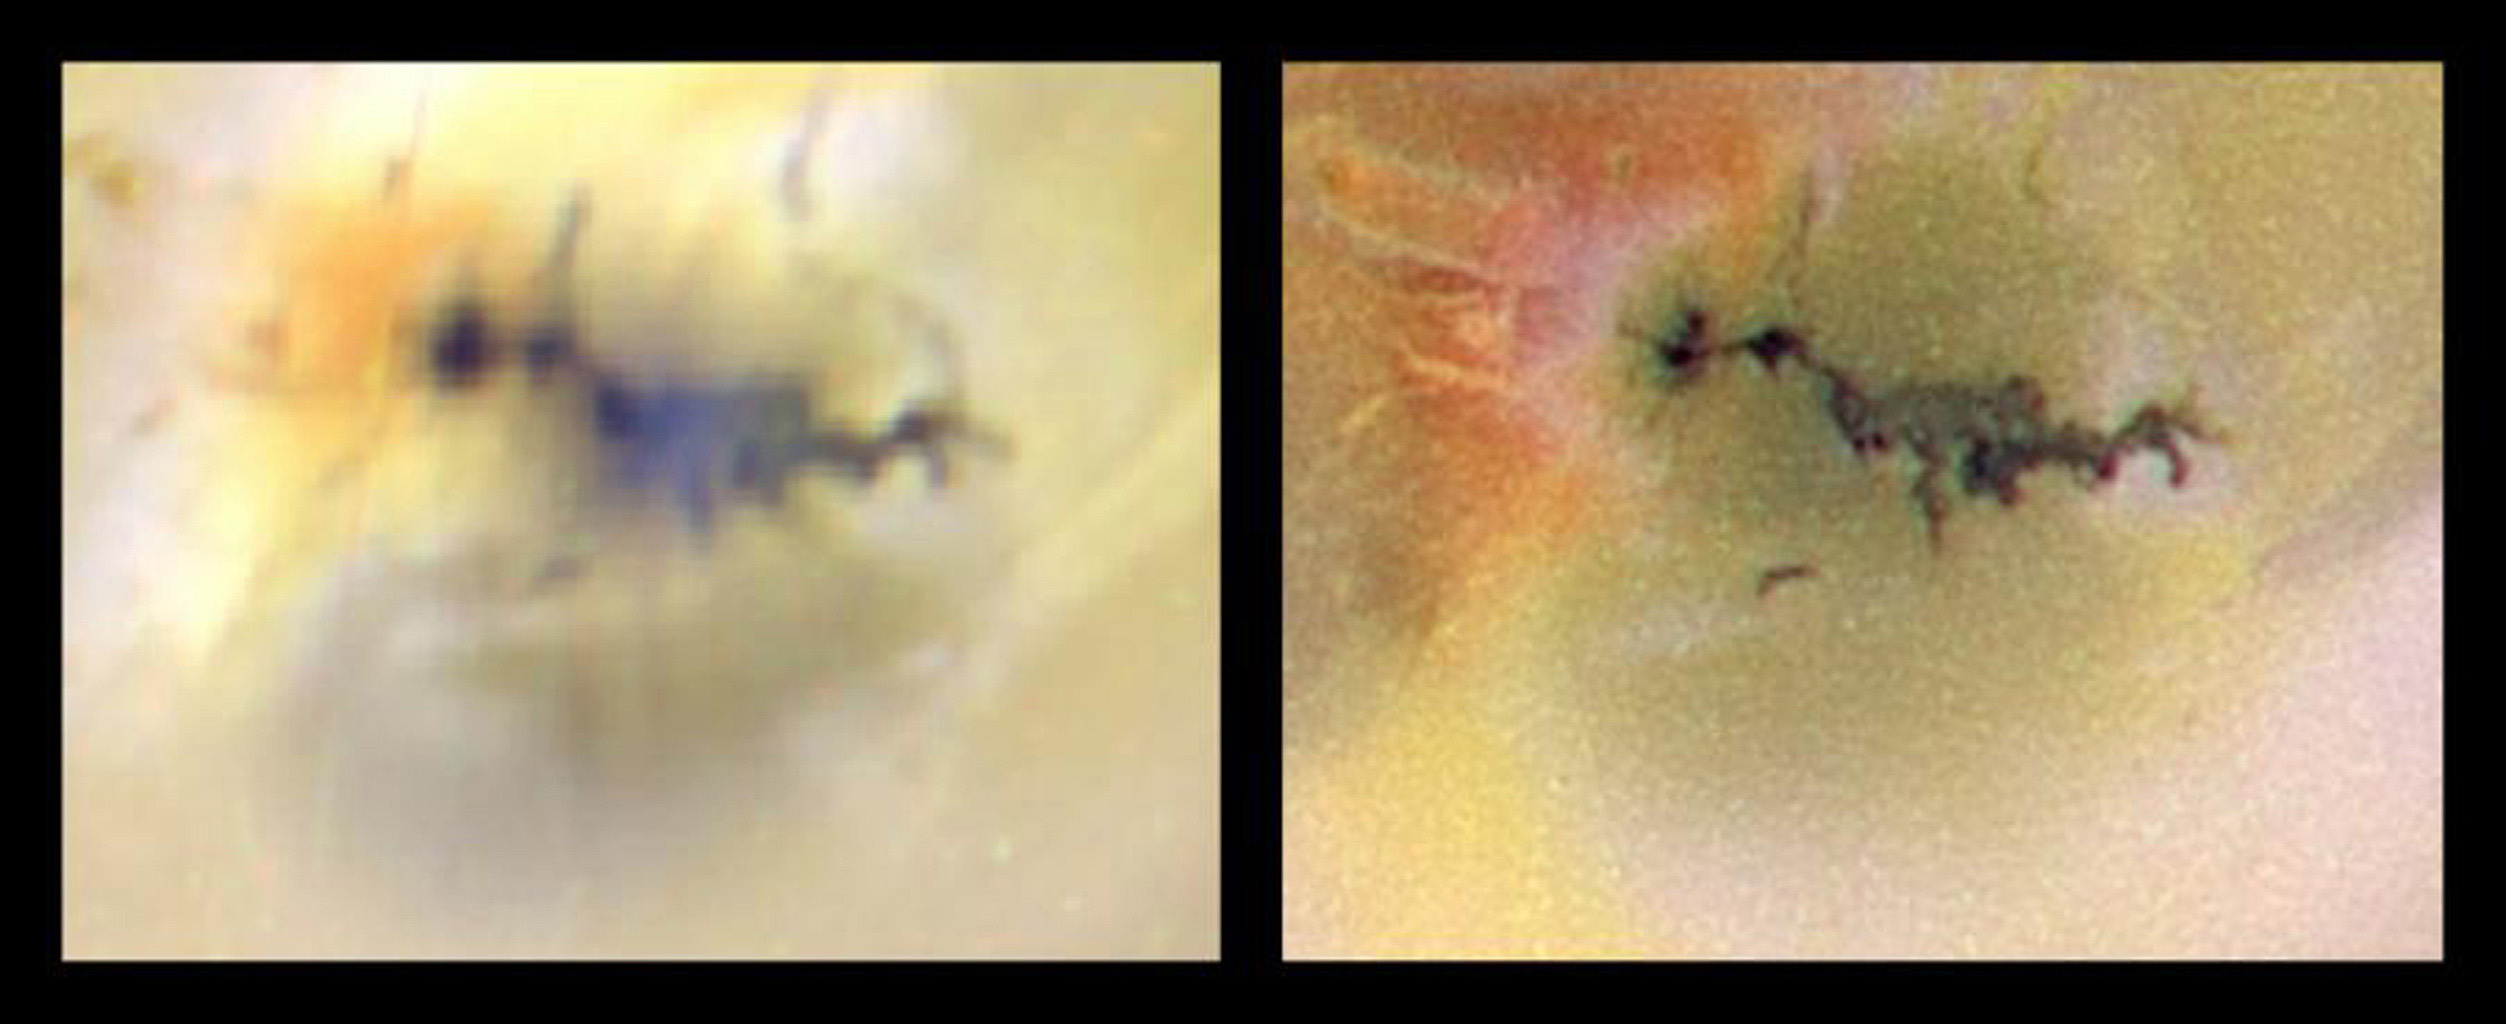 A volcano named Zamama on Jupiter's moon Io has recently changed in appearance as seen in this pair of images of Io acquired by NASA's Galileo spacecraft as it approached Io in preparation for a close flyby.